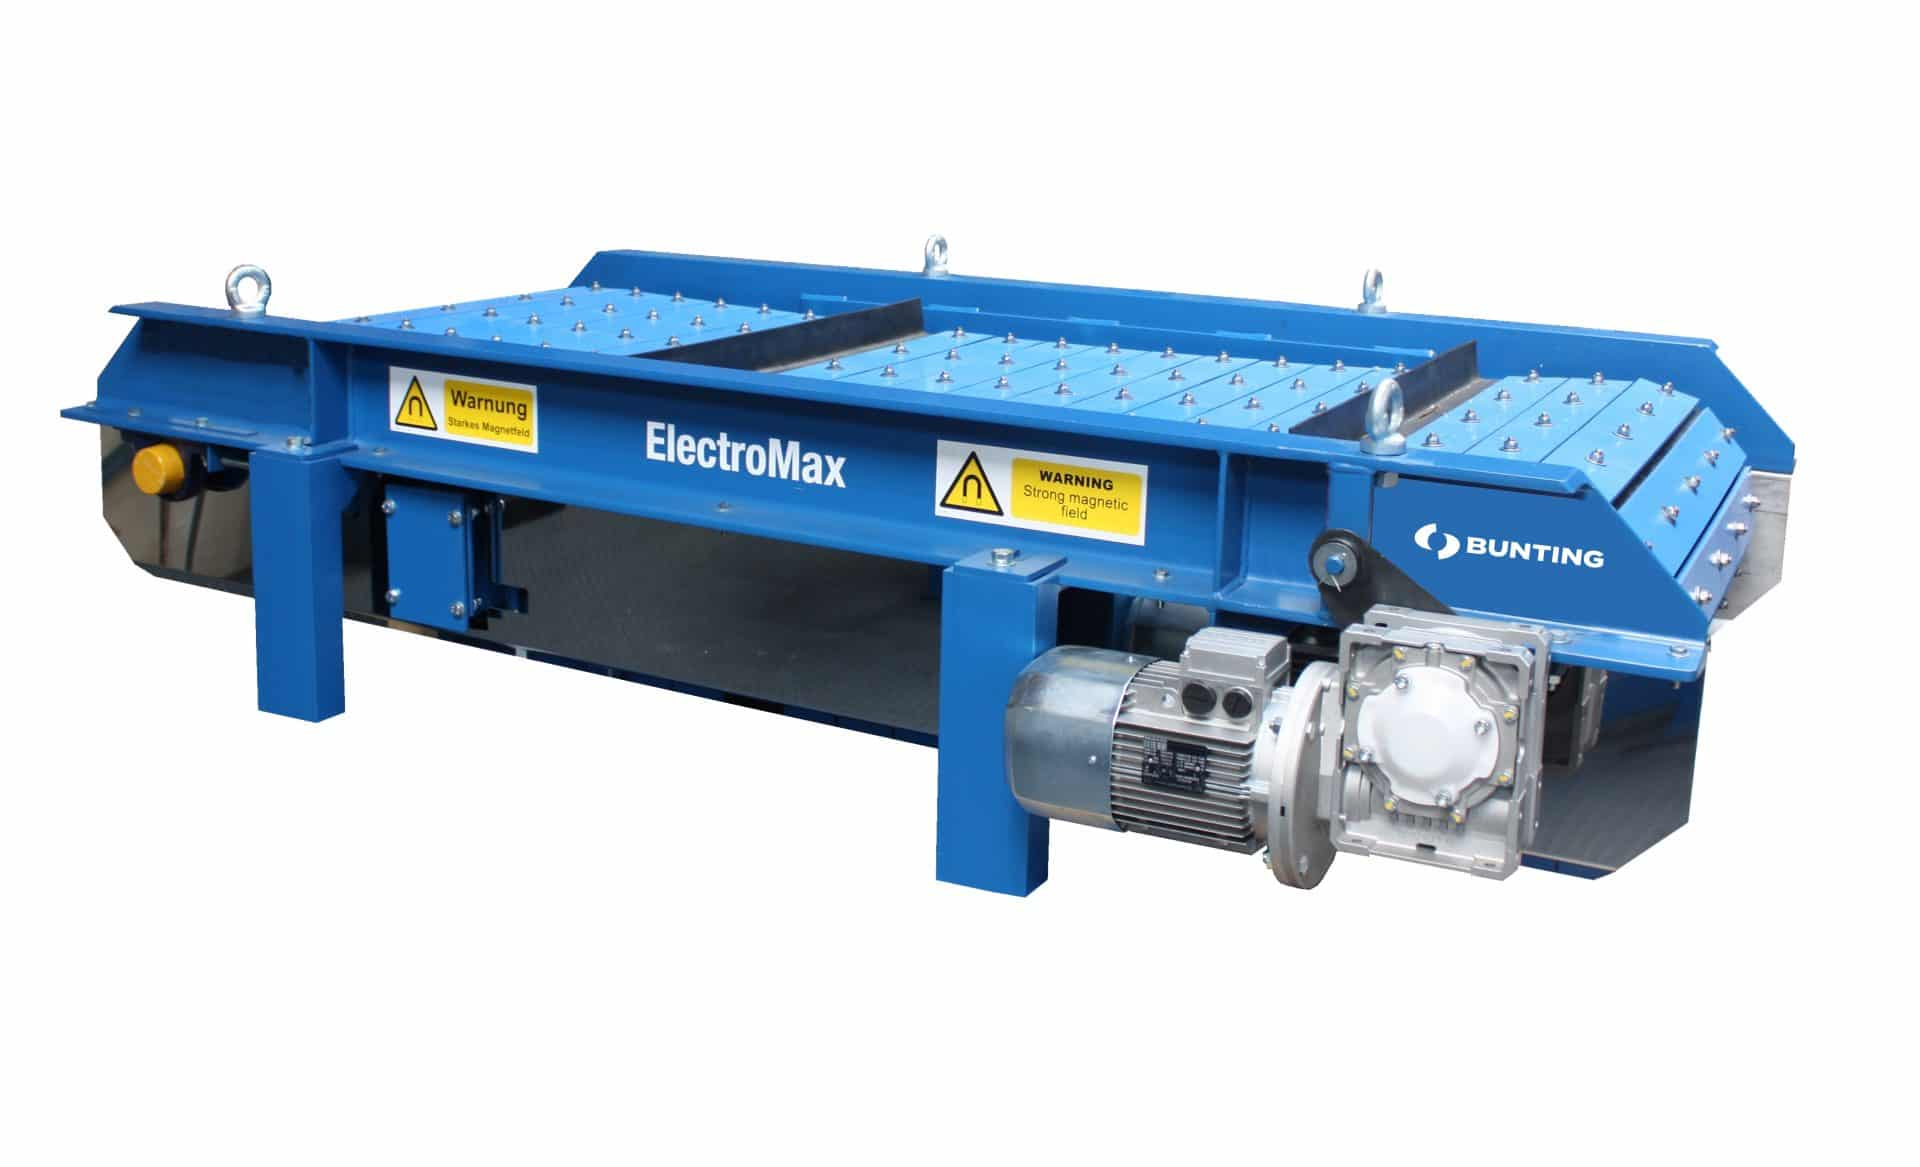 Bunting Electromax Overband Magnet